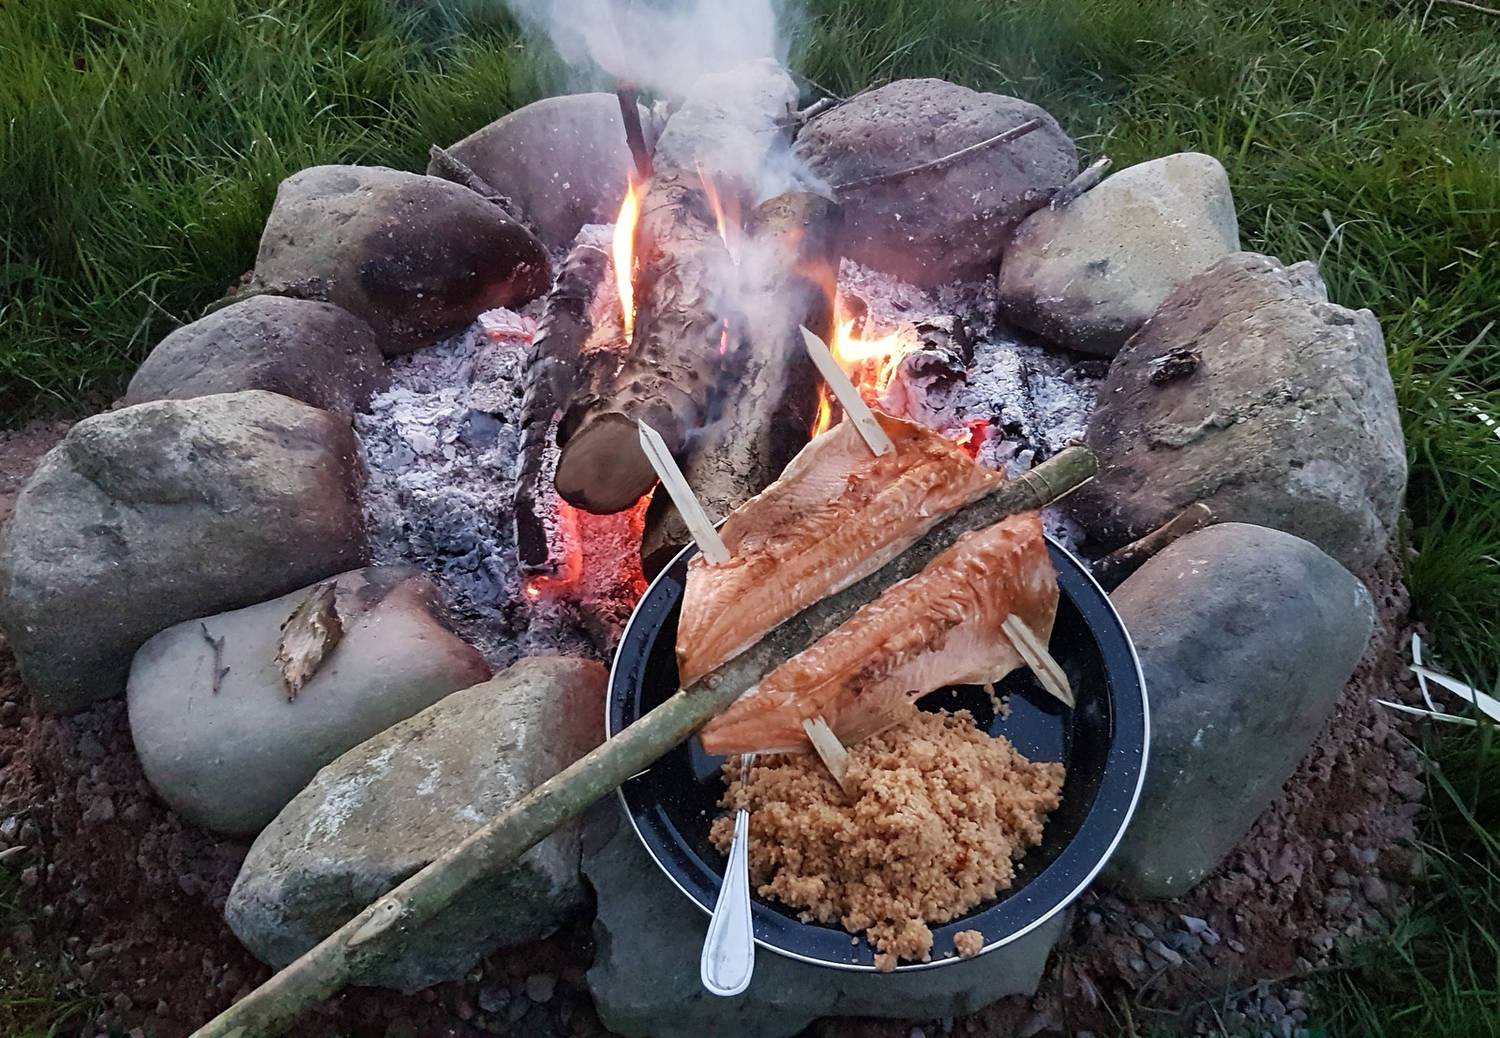 A photograph of cooked trout next to a campfire